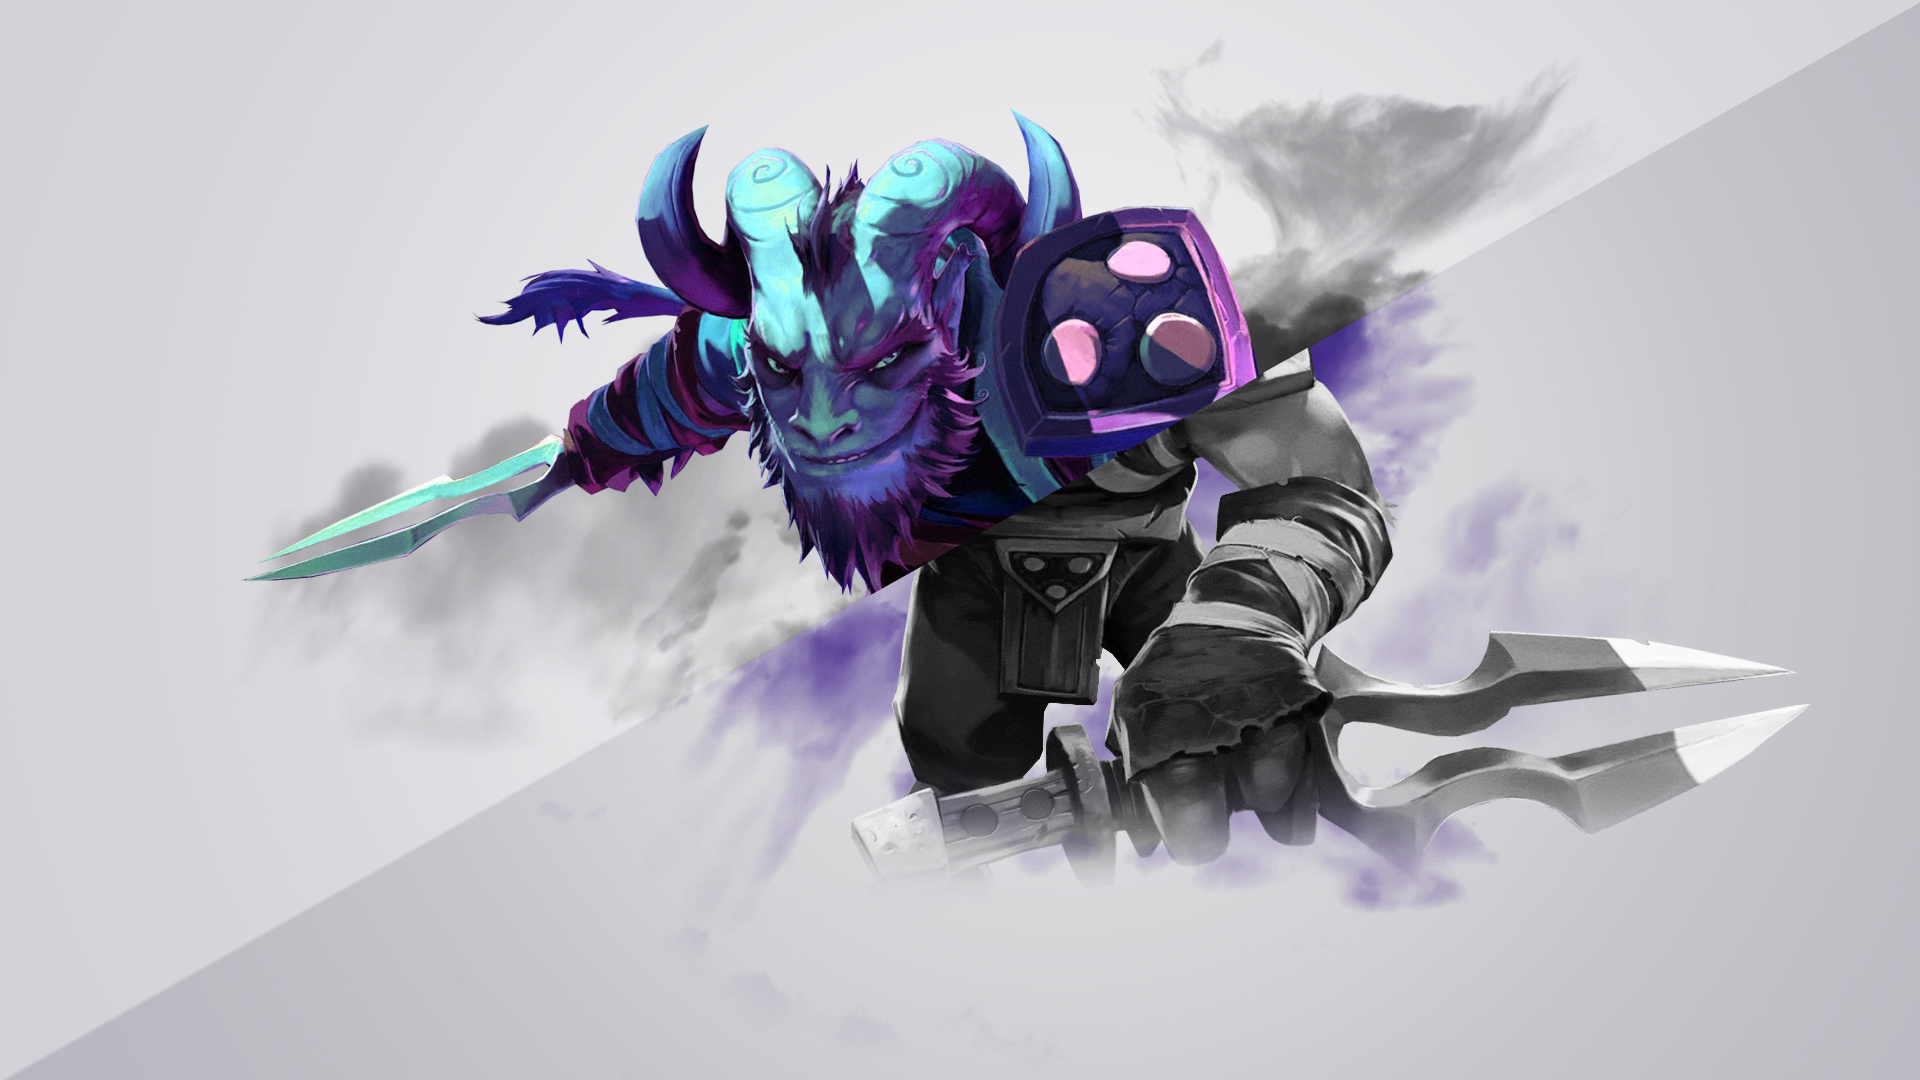 Free Dota 2 Riki Wallpaper 1920x1080 By Dandapixel On Deviantart